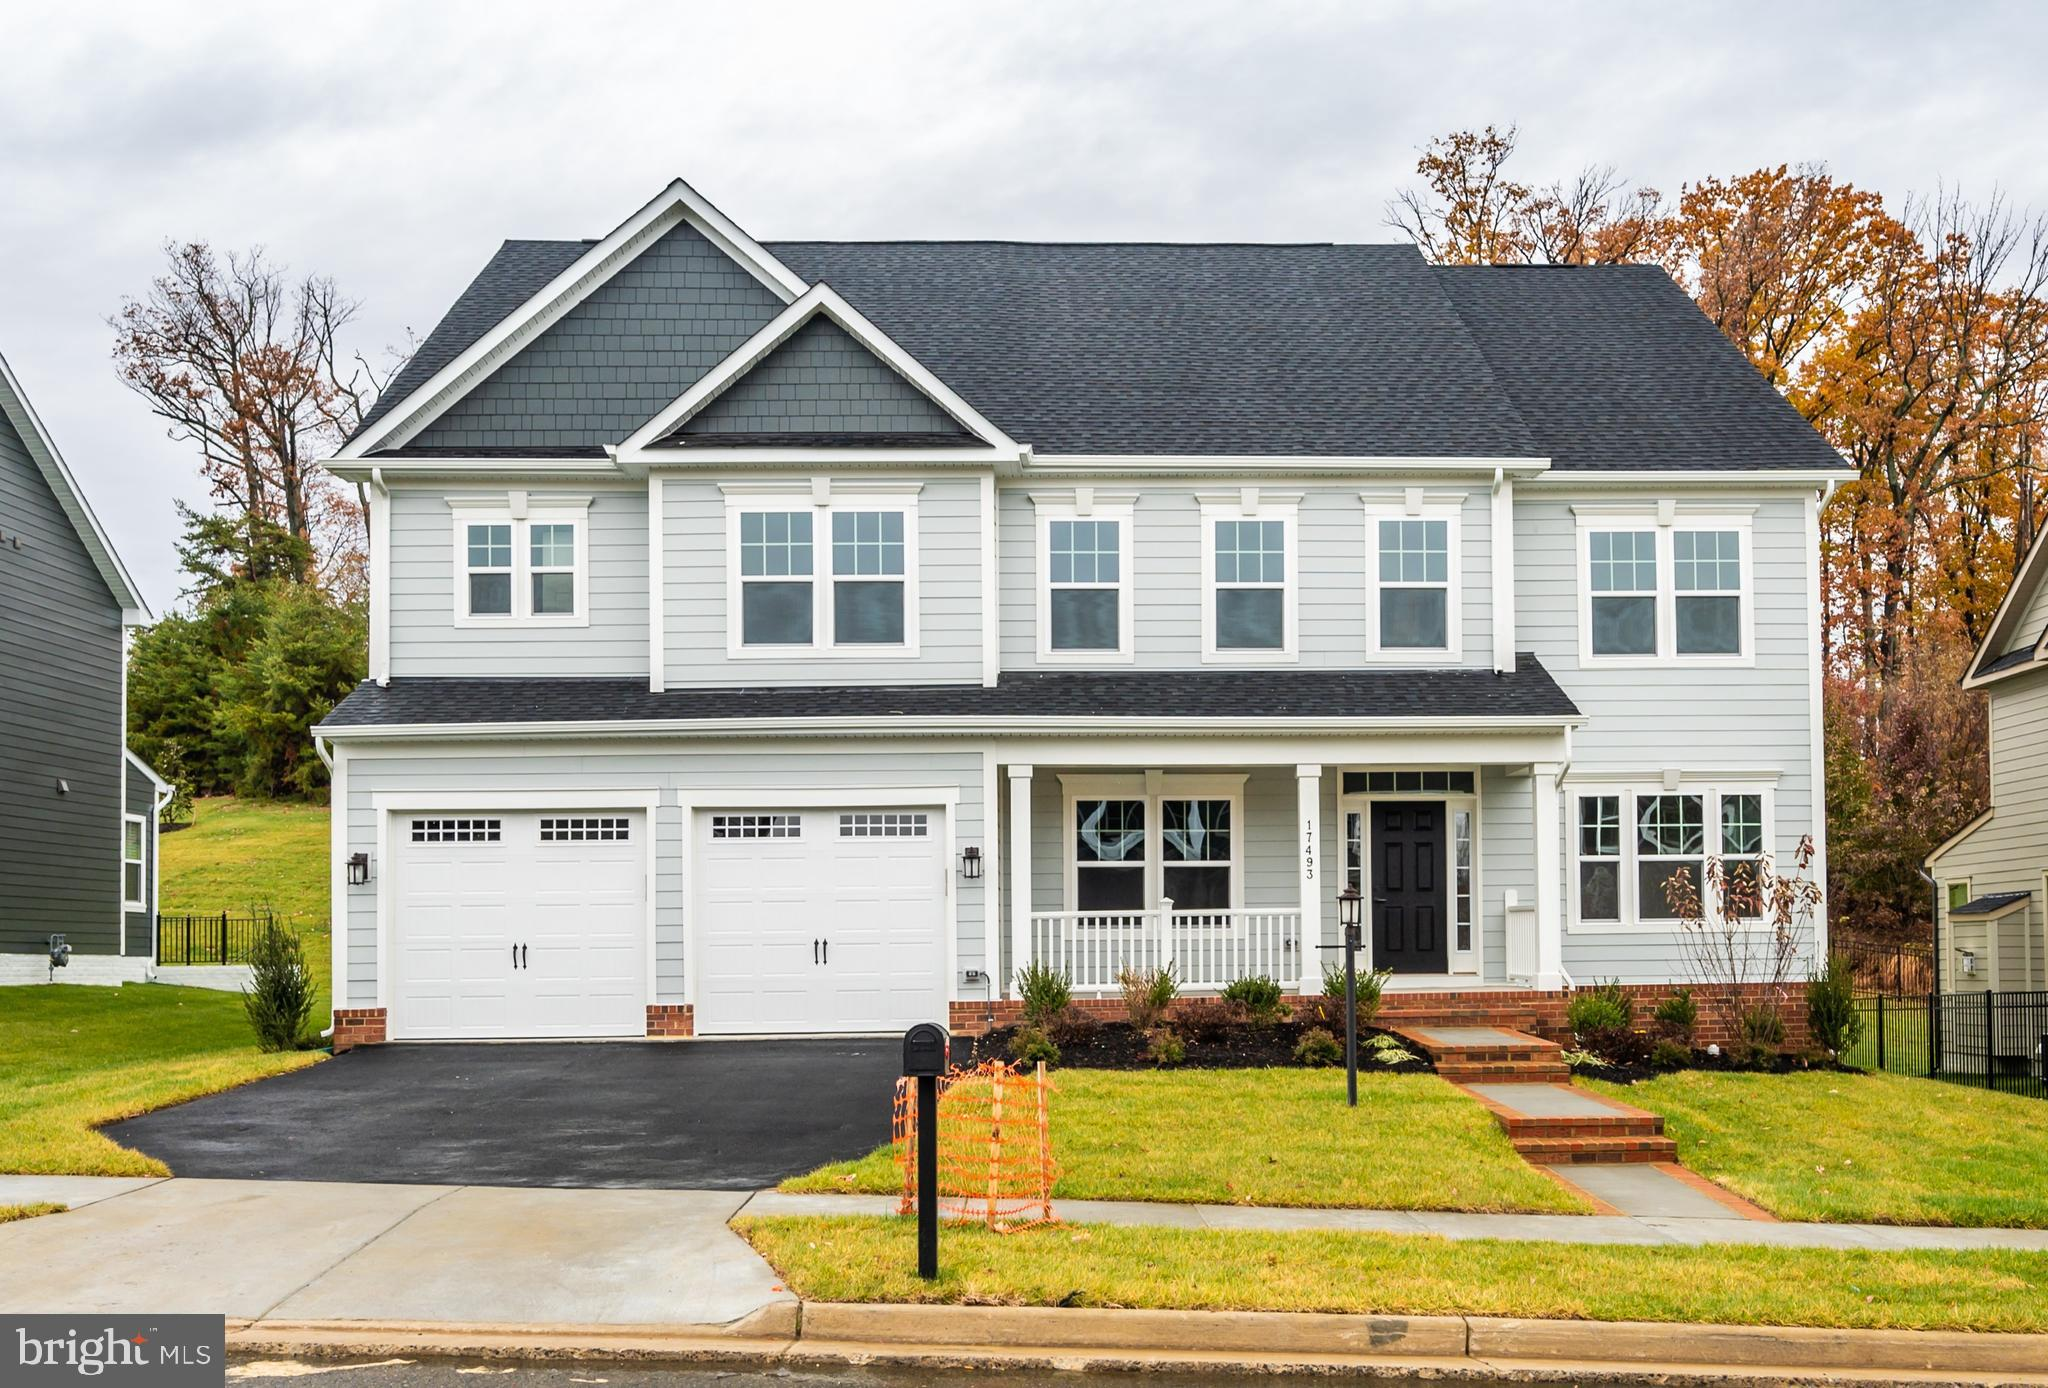 If you're looking for a home that combines the quality and style of a classic with a modern sense of